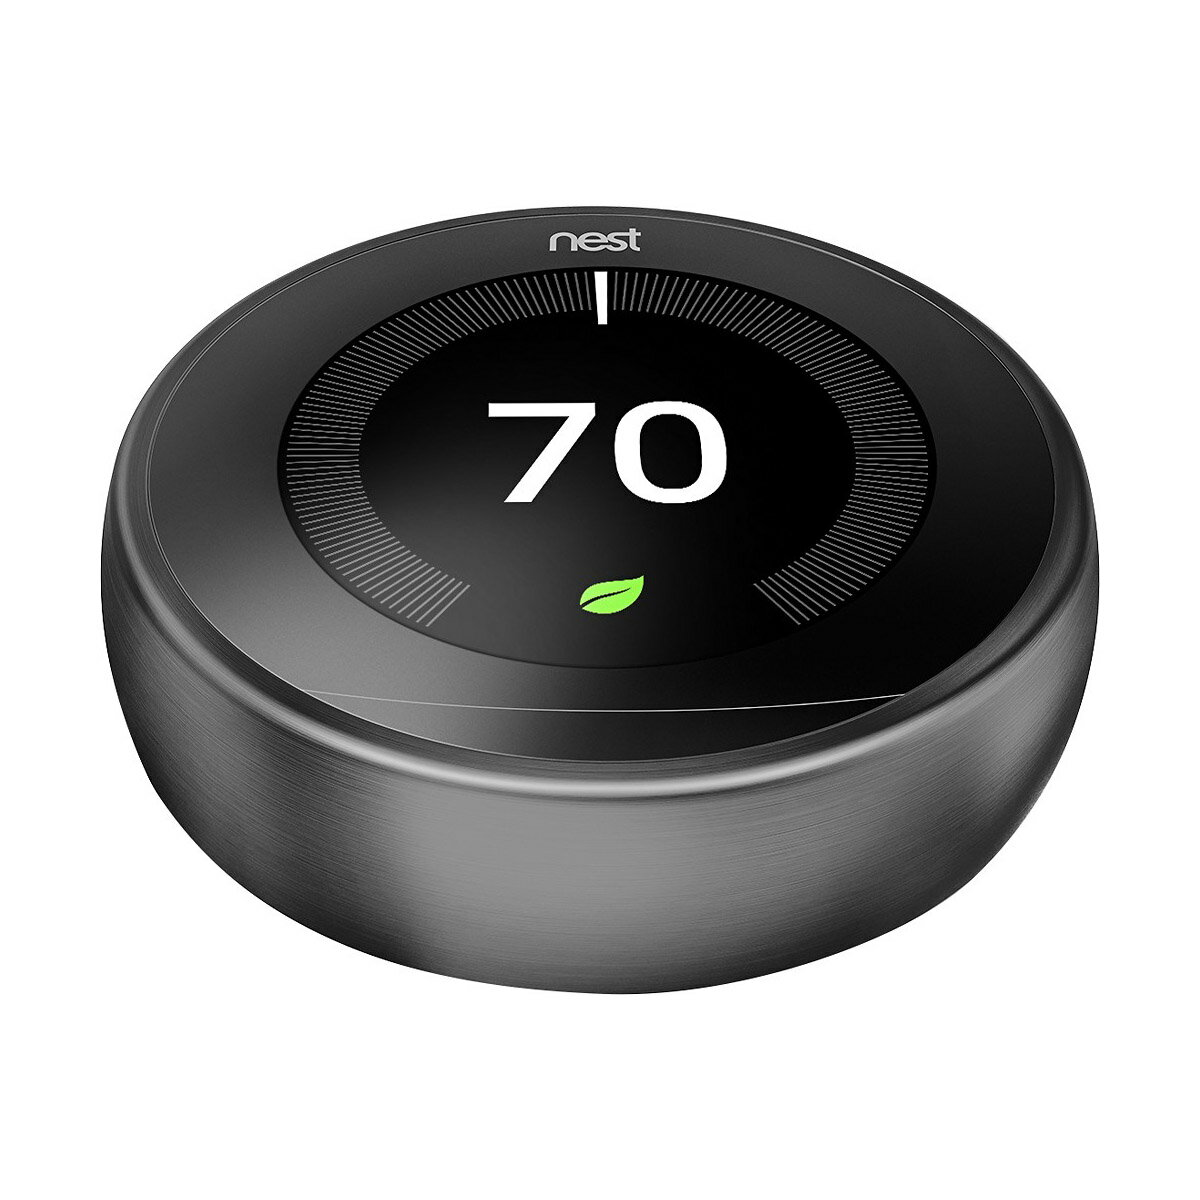 Nest 3rd Generation Programmable Wi-Fi Smart Learning Thermostat T3016US - Black 4